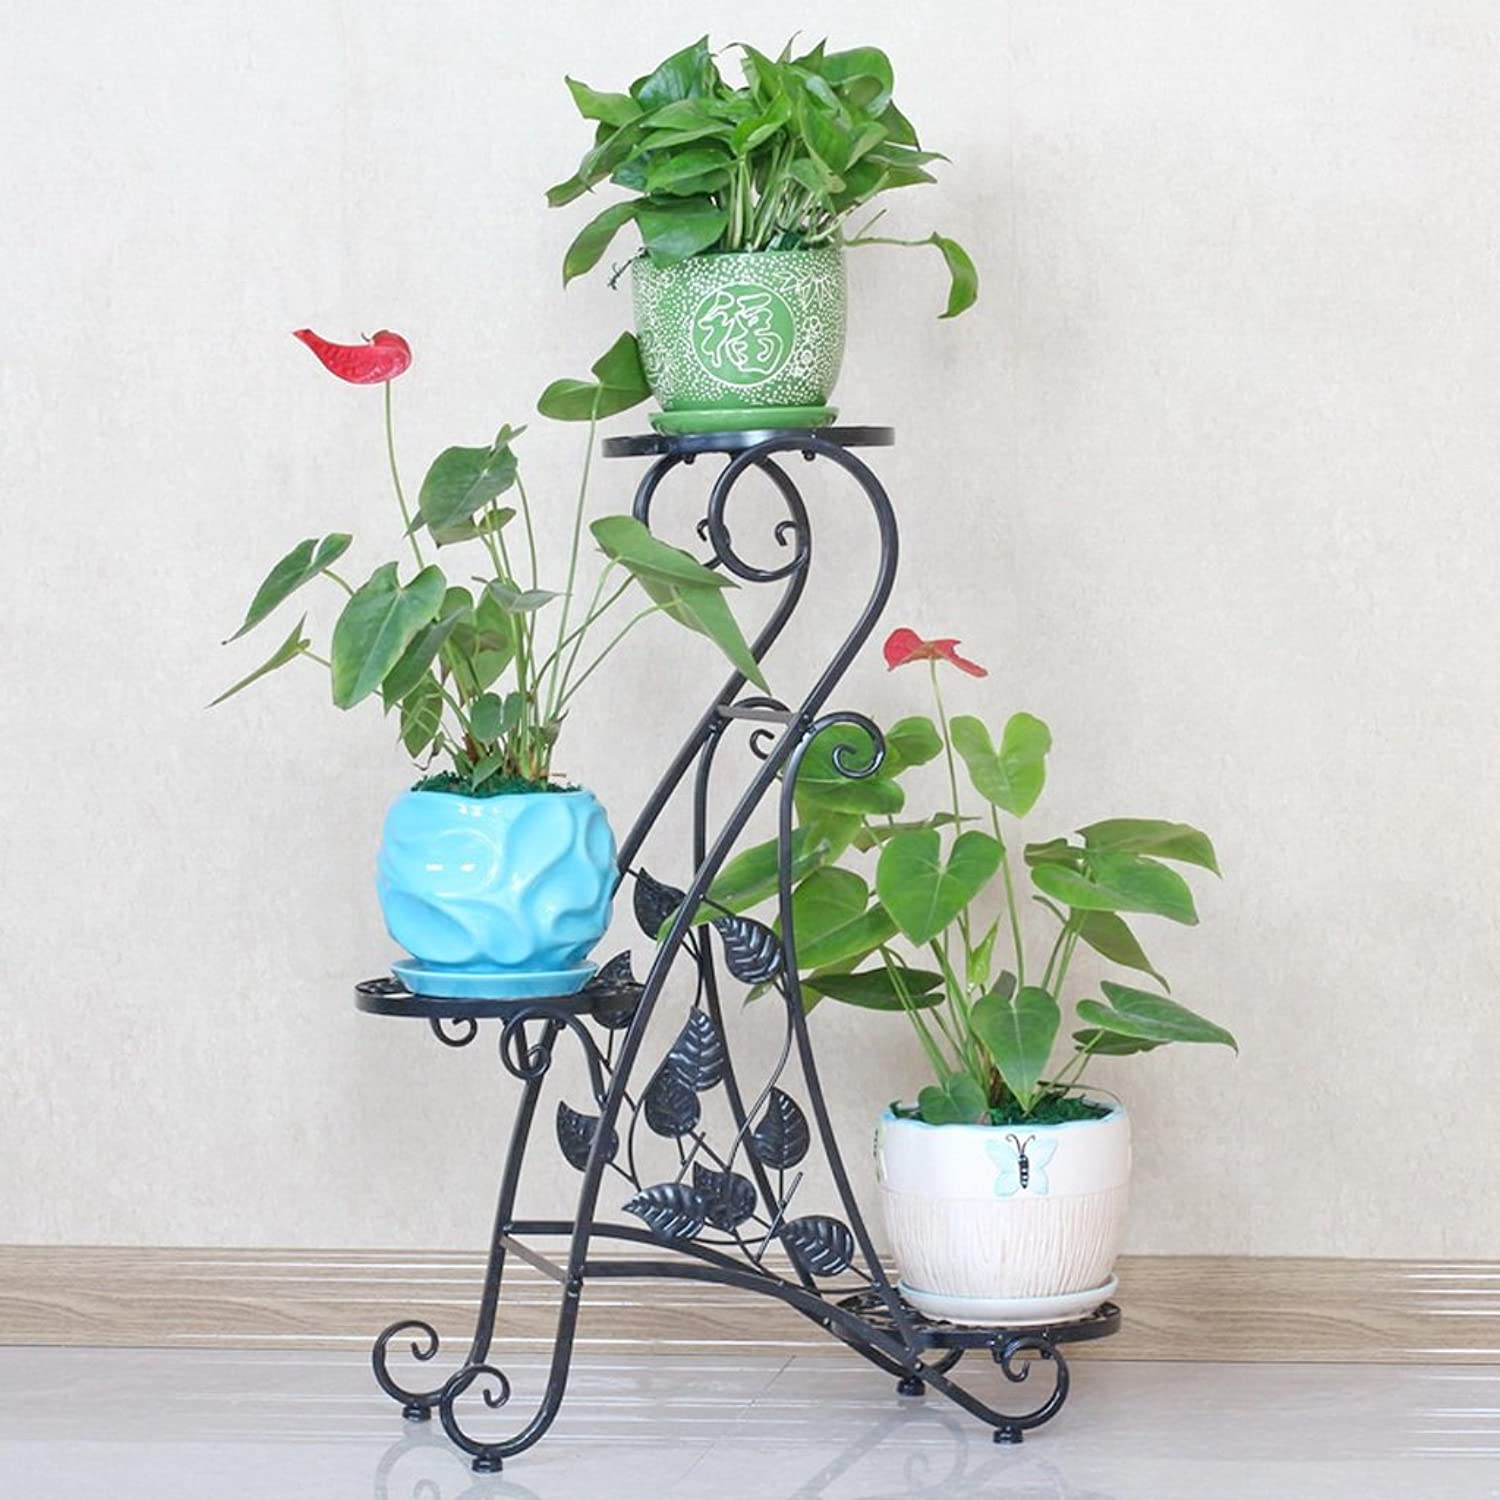 Fragrant Multi-Layer Indoor Balcony Rack Wrought Iron Solid Wood Living Room Space Flower Pot Floor-Standing Green Radish Black